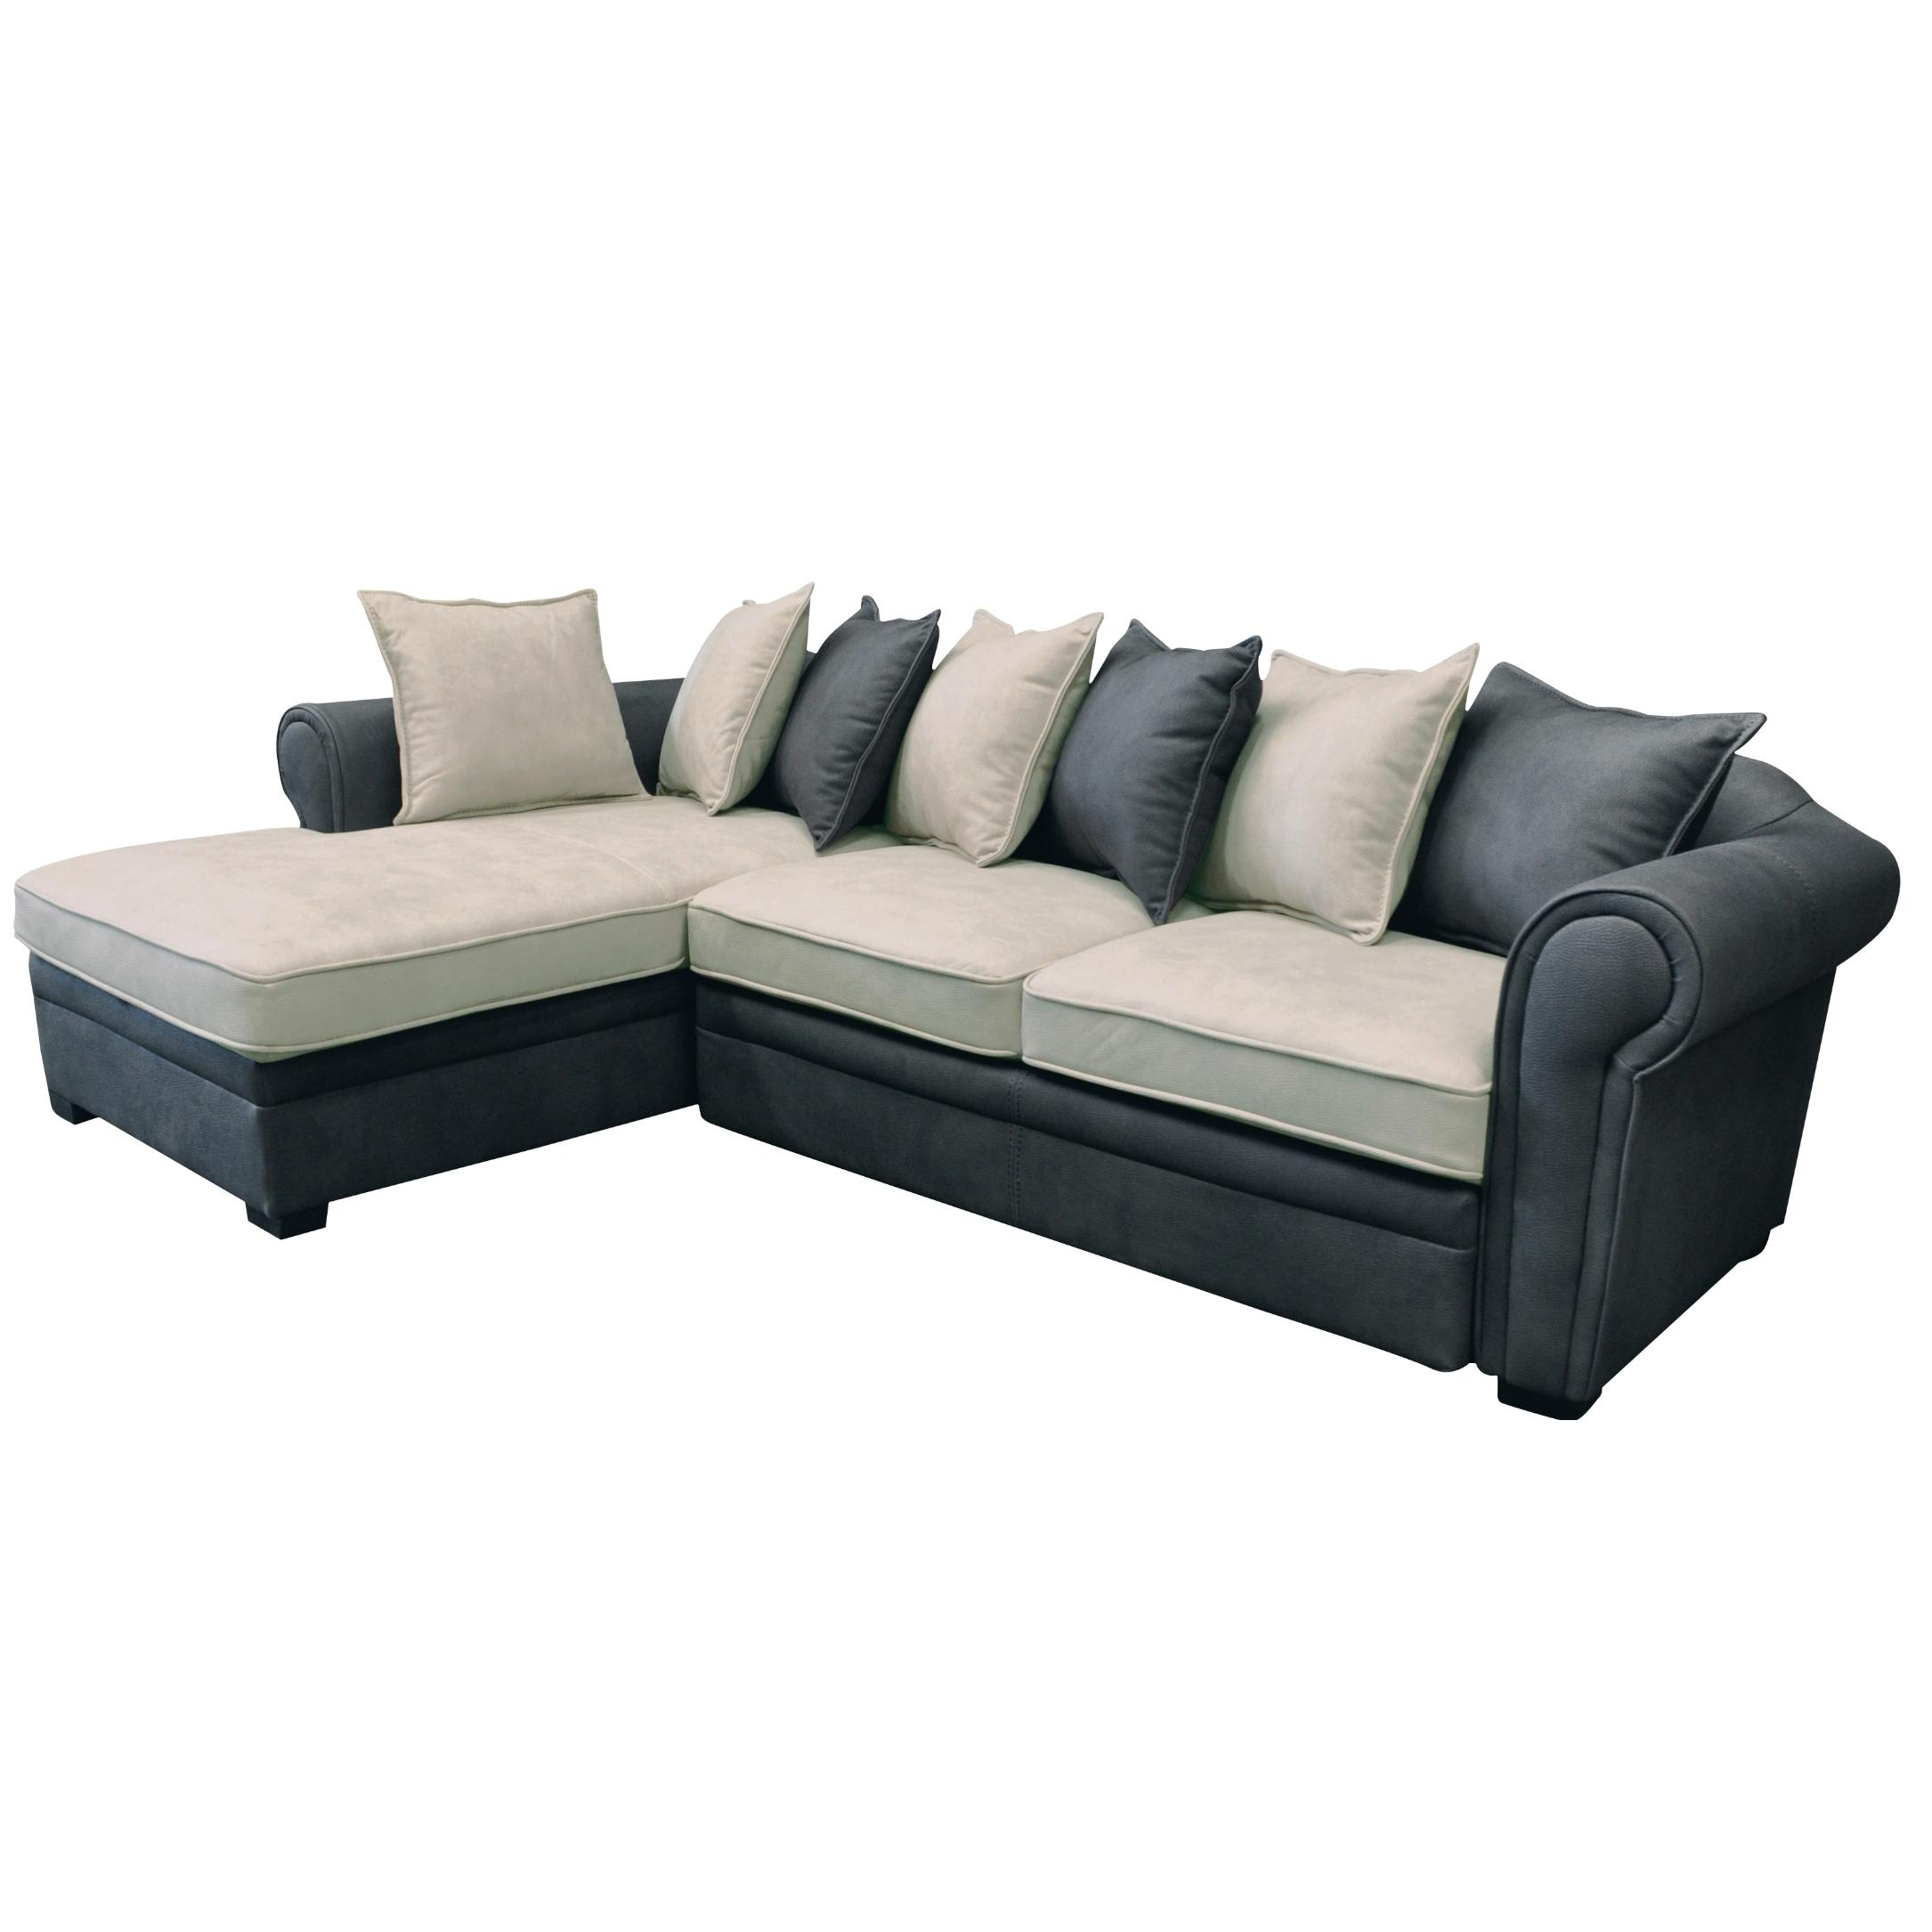 Sofa Bed Right Corner Fabric Nabuk Grey Ecru